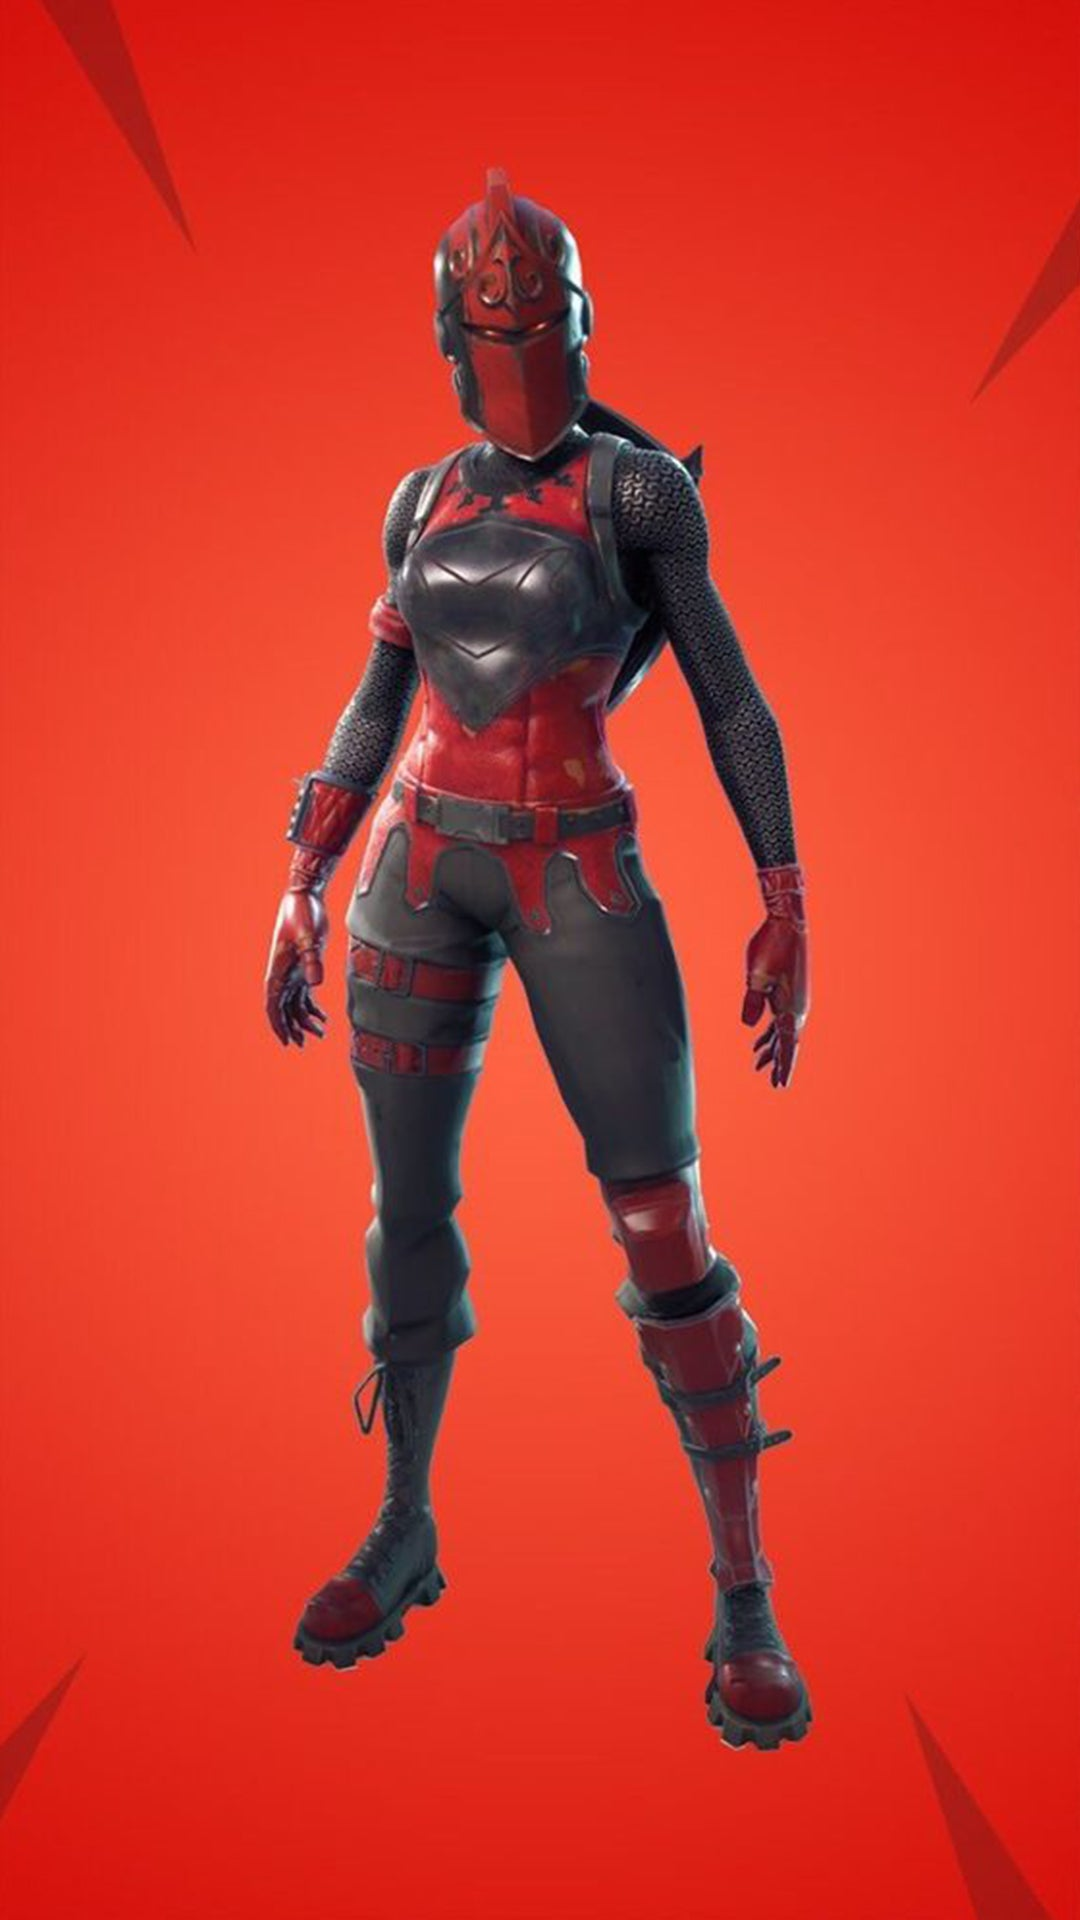 Cool Red Knight Phone Wallpaper Phone 2019 - Fortnite ...